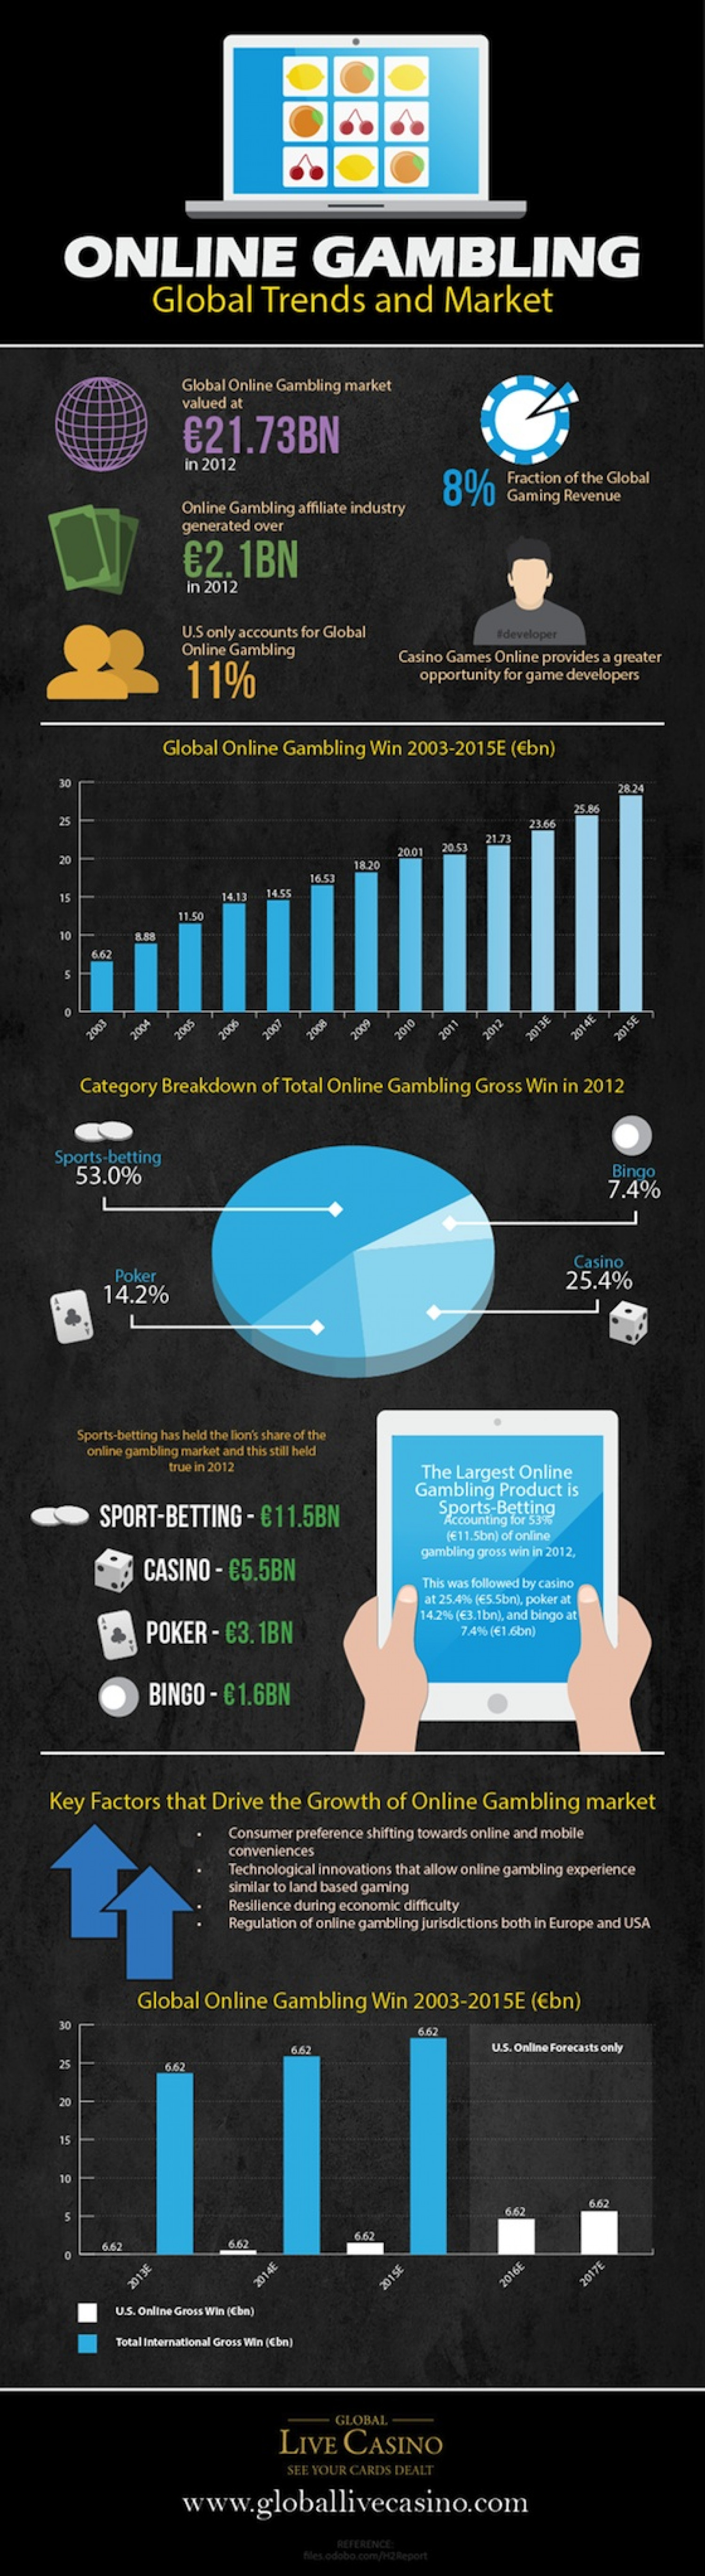 Online Gambling: Global Trends and Market Infographic